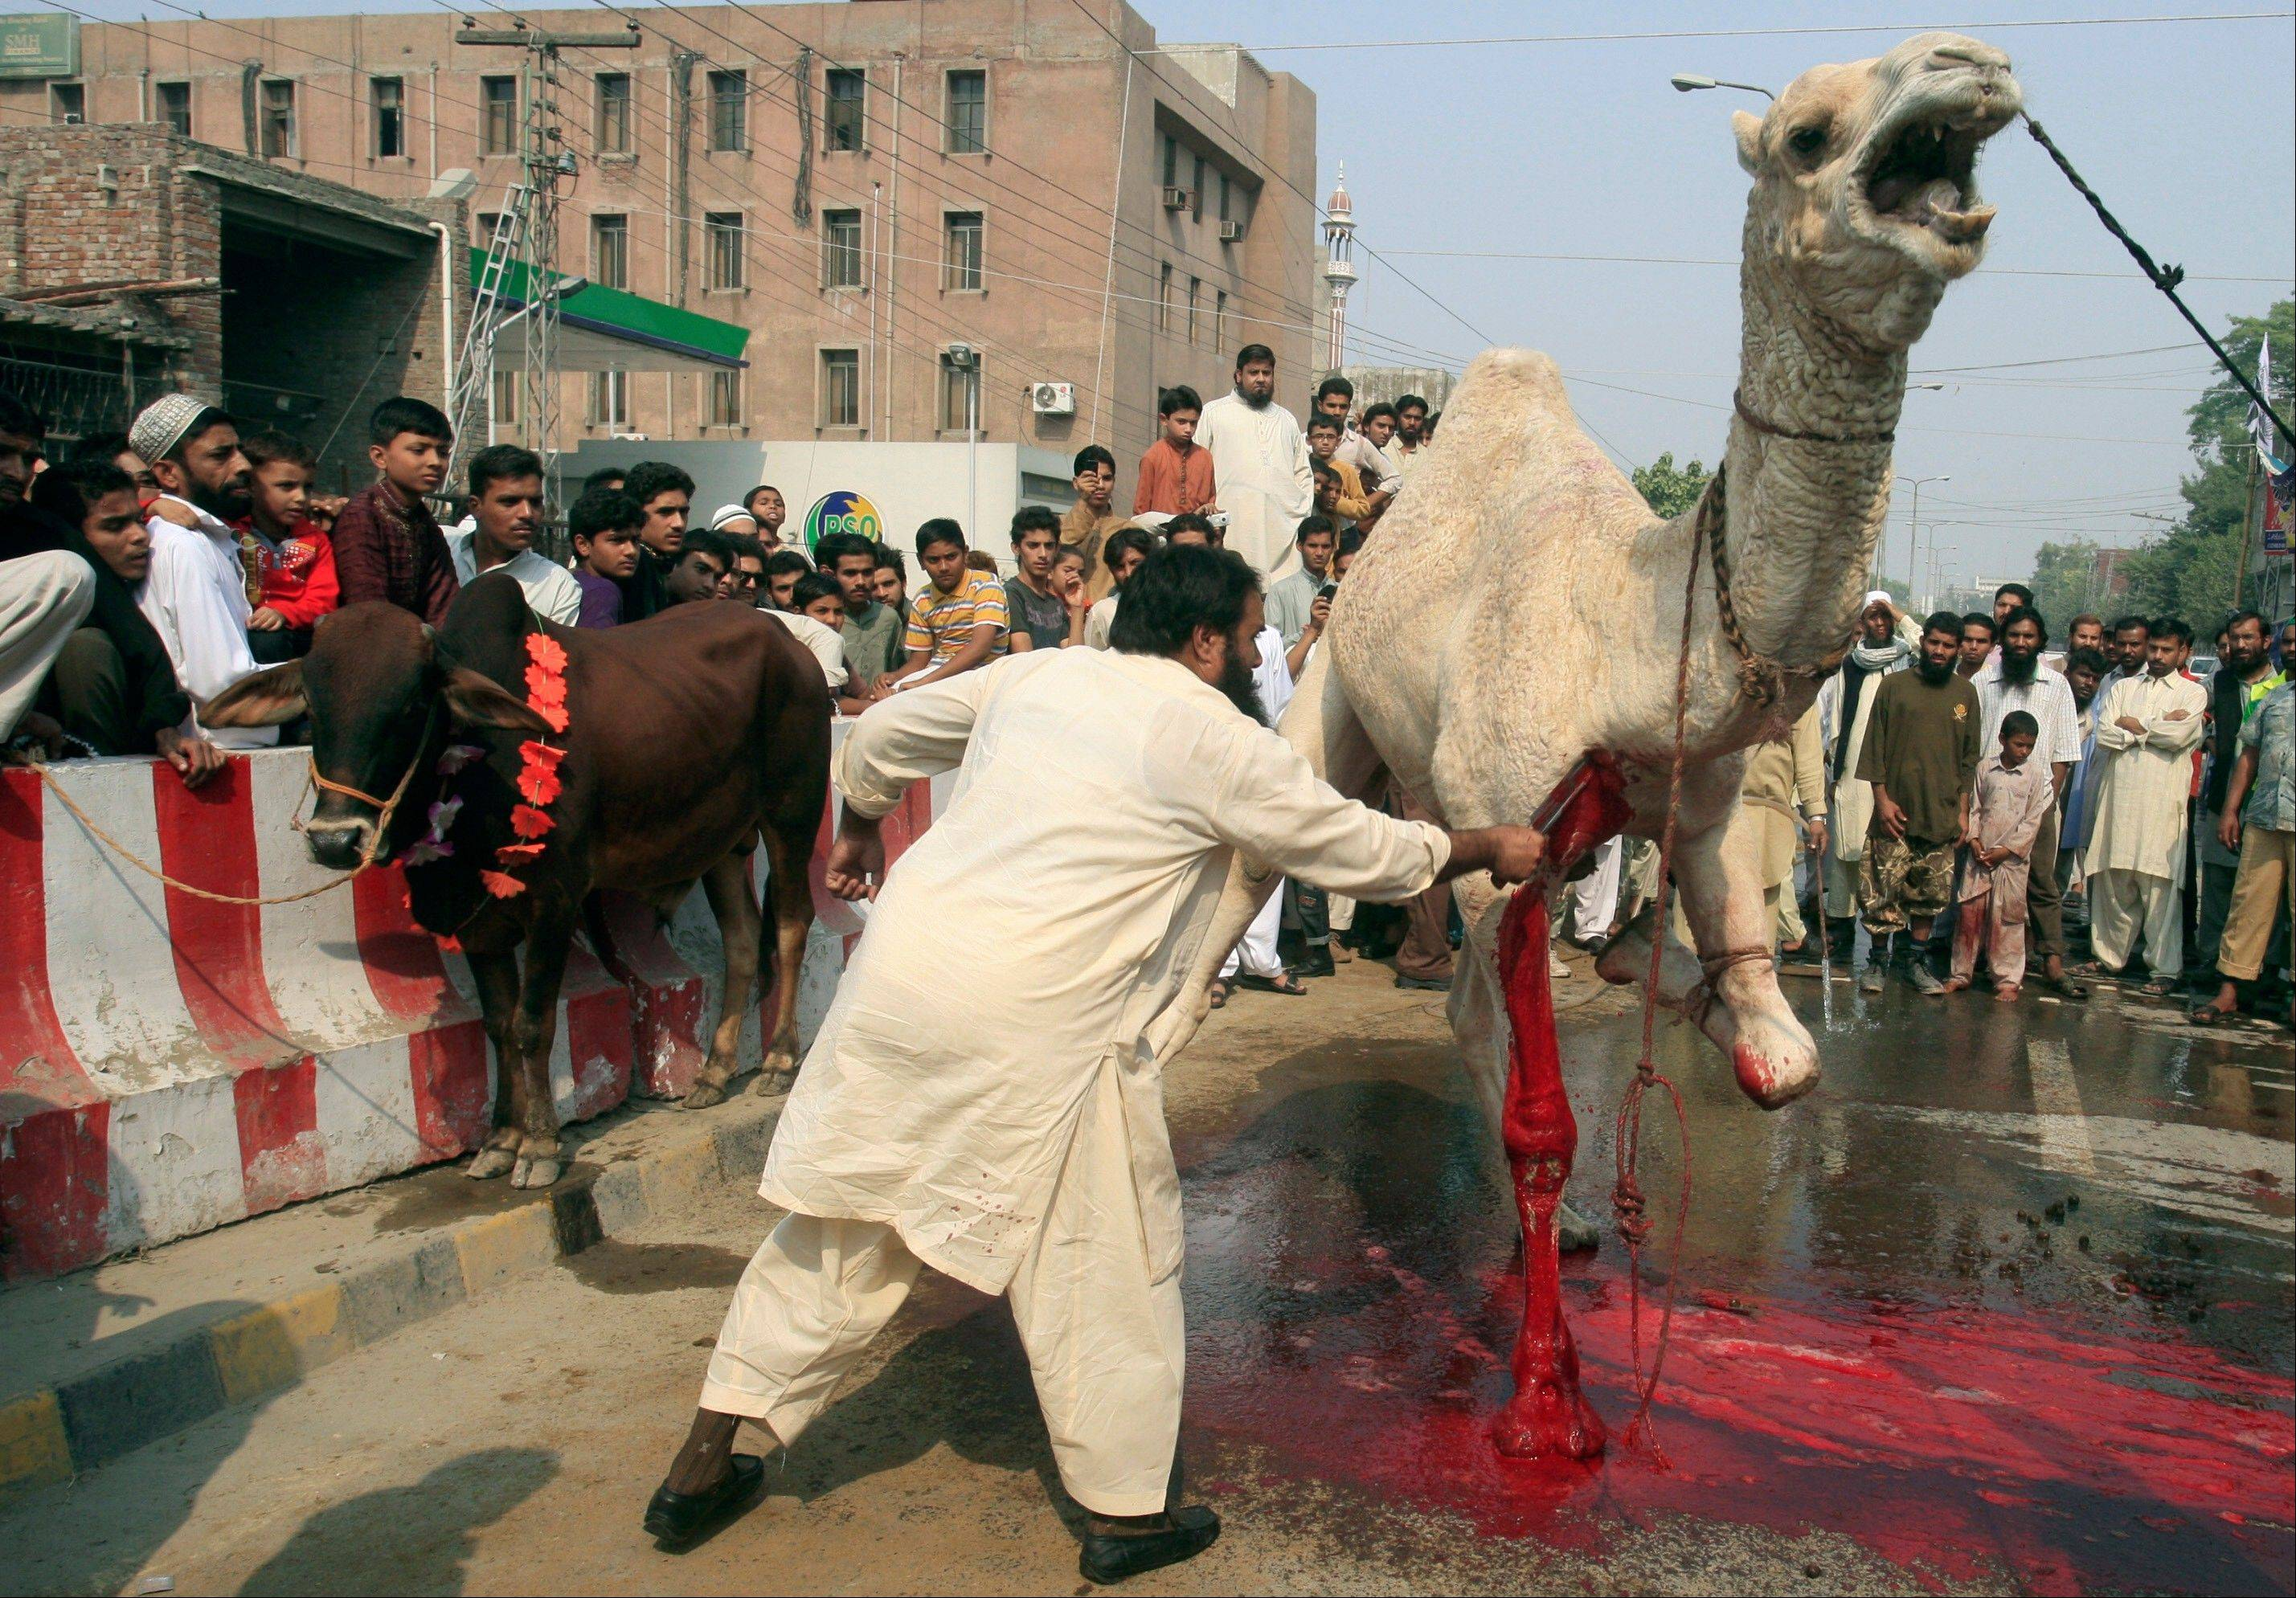 A Pakistani man slaughters a camel in a street, on the first day of the Muslim holiday of Eid al-Adha.